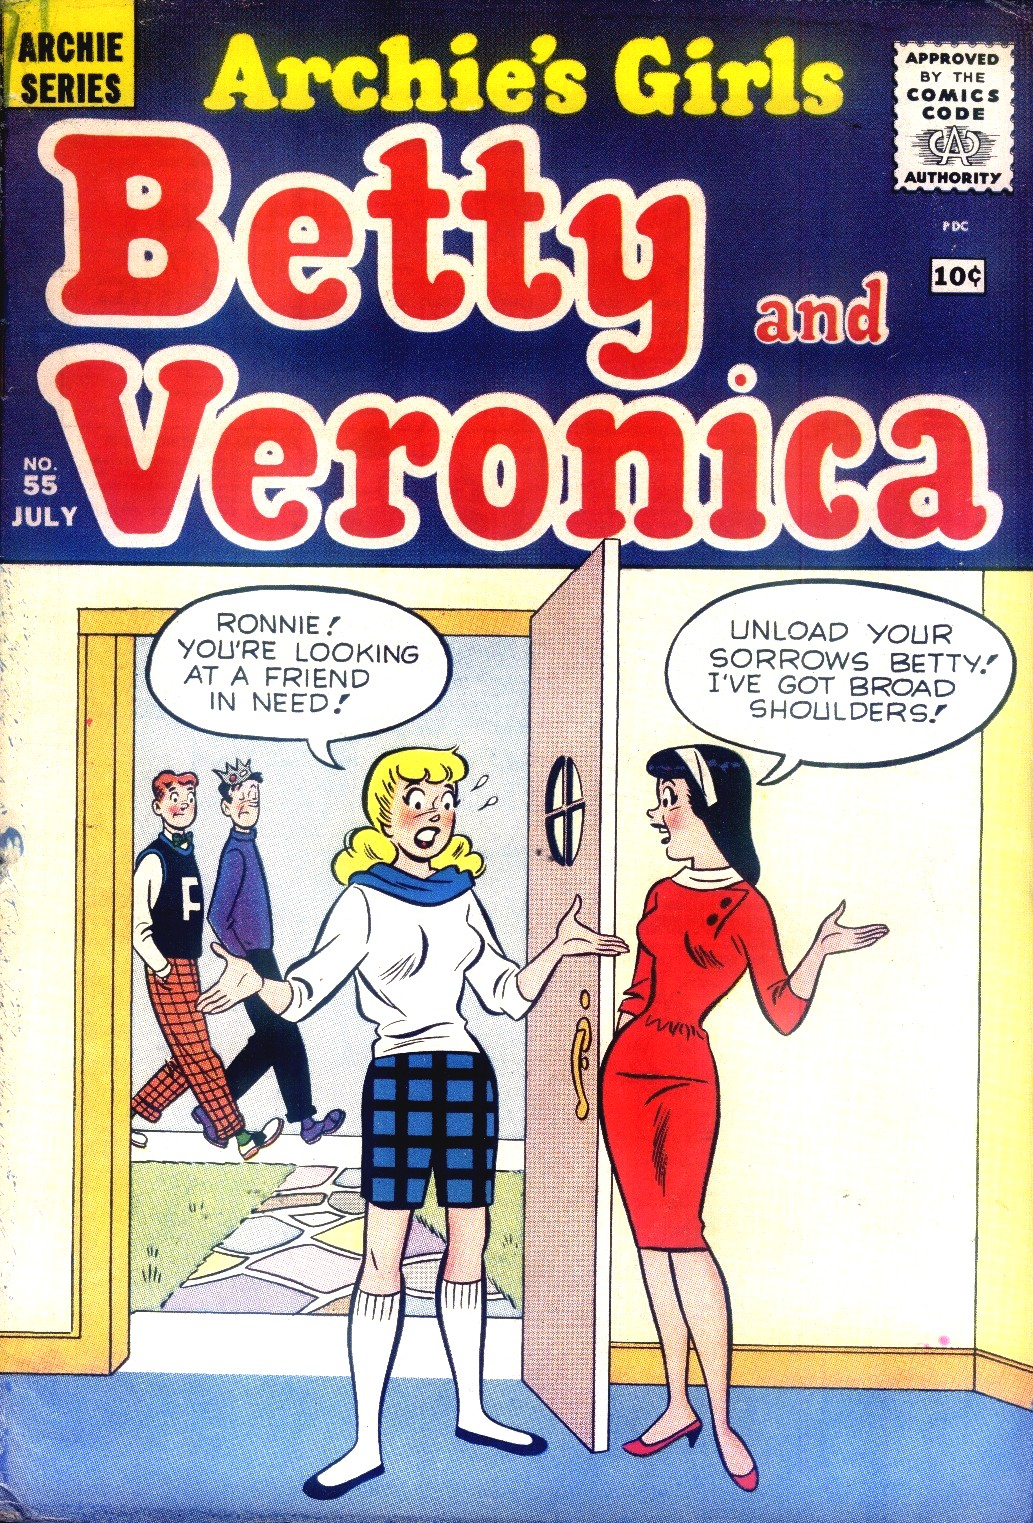 Read online Archie's Girls Betty and Veronica comic -  Issue #55 - 1